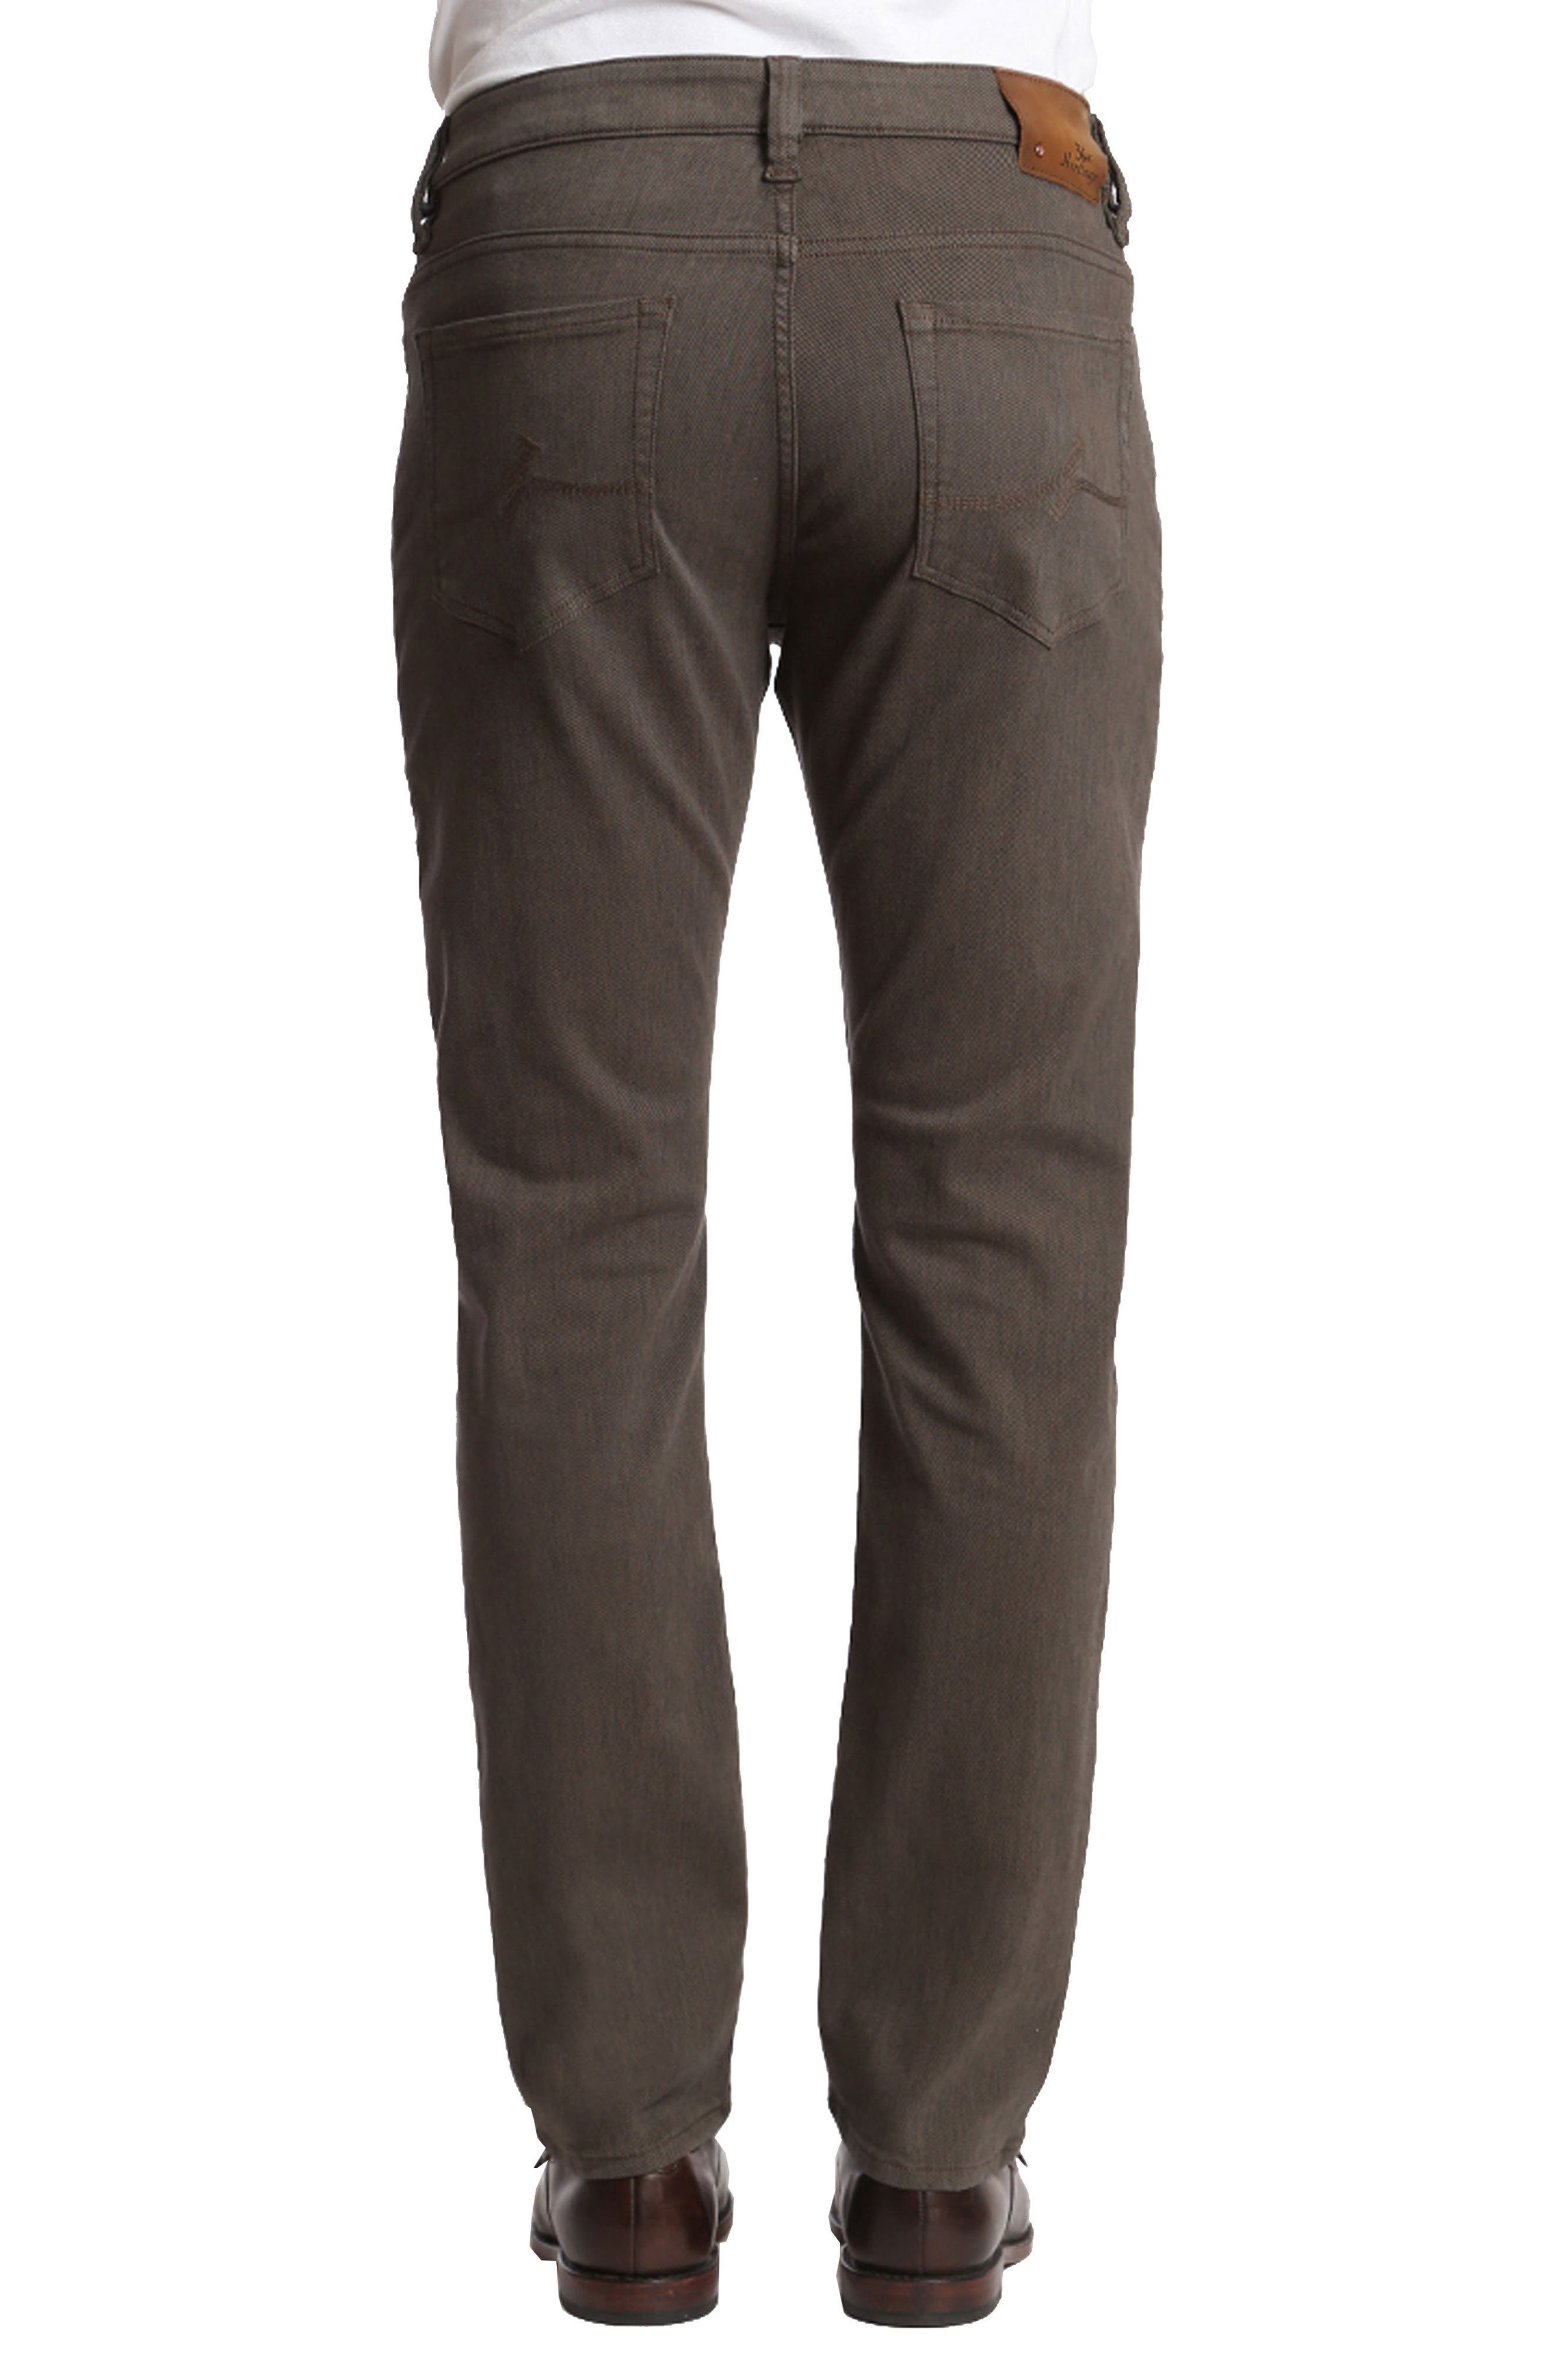 Charisma Relaxed Fit Jeans,                             Alternate thumbnail 2, color,                             Taupe Diagonal